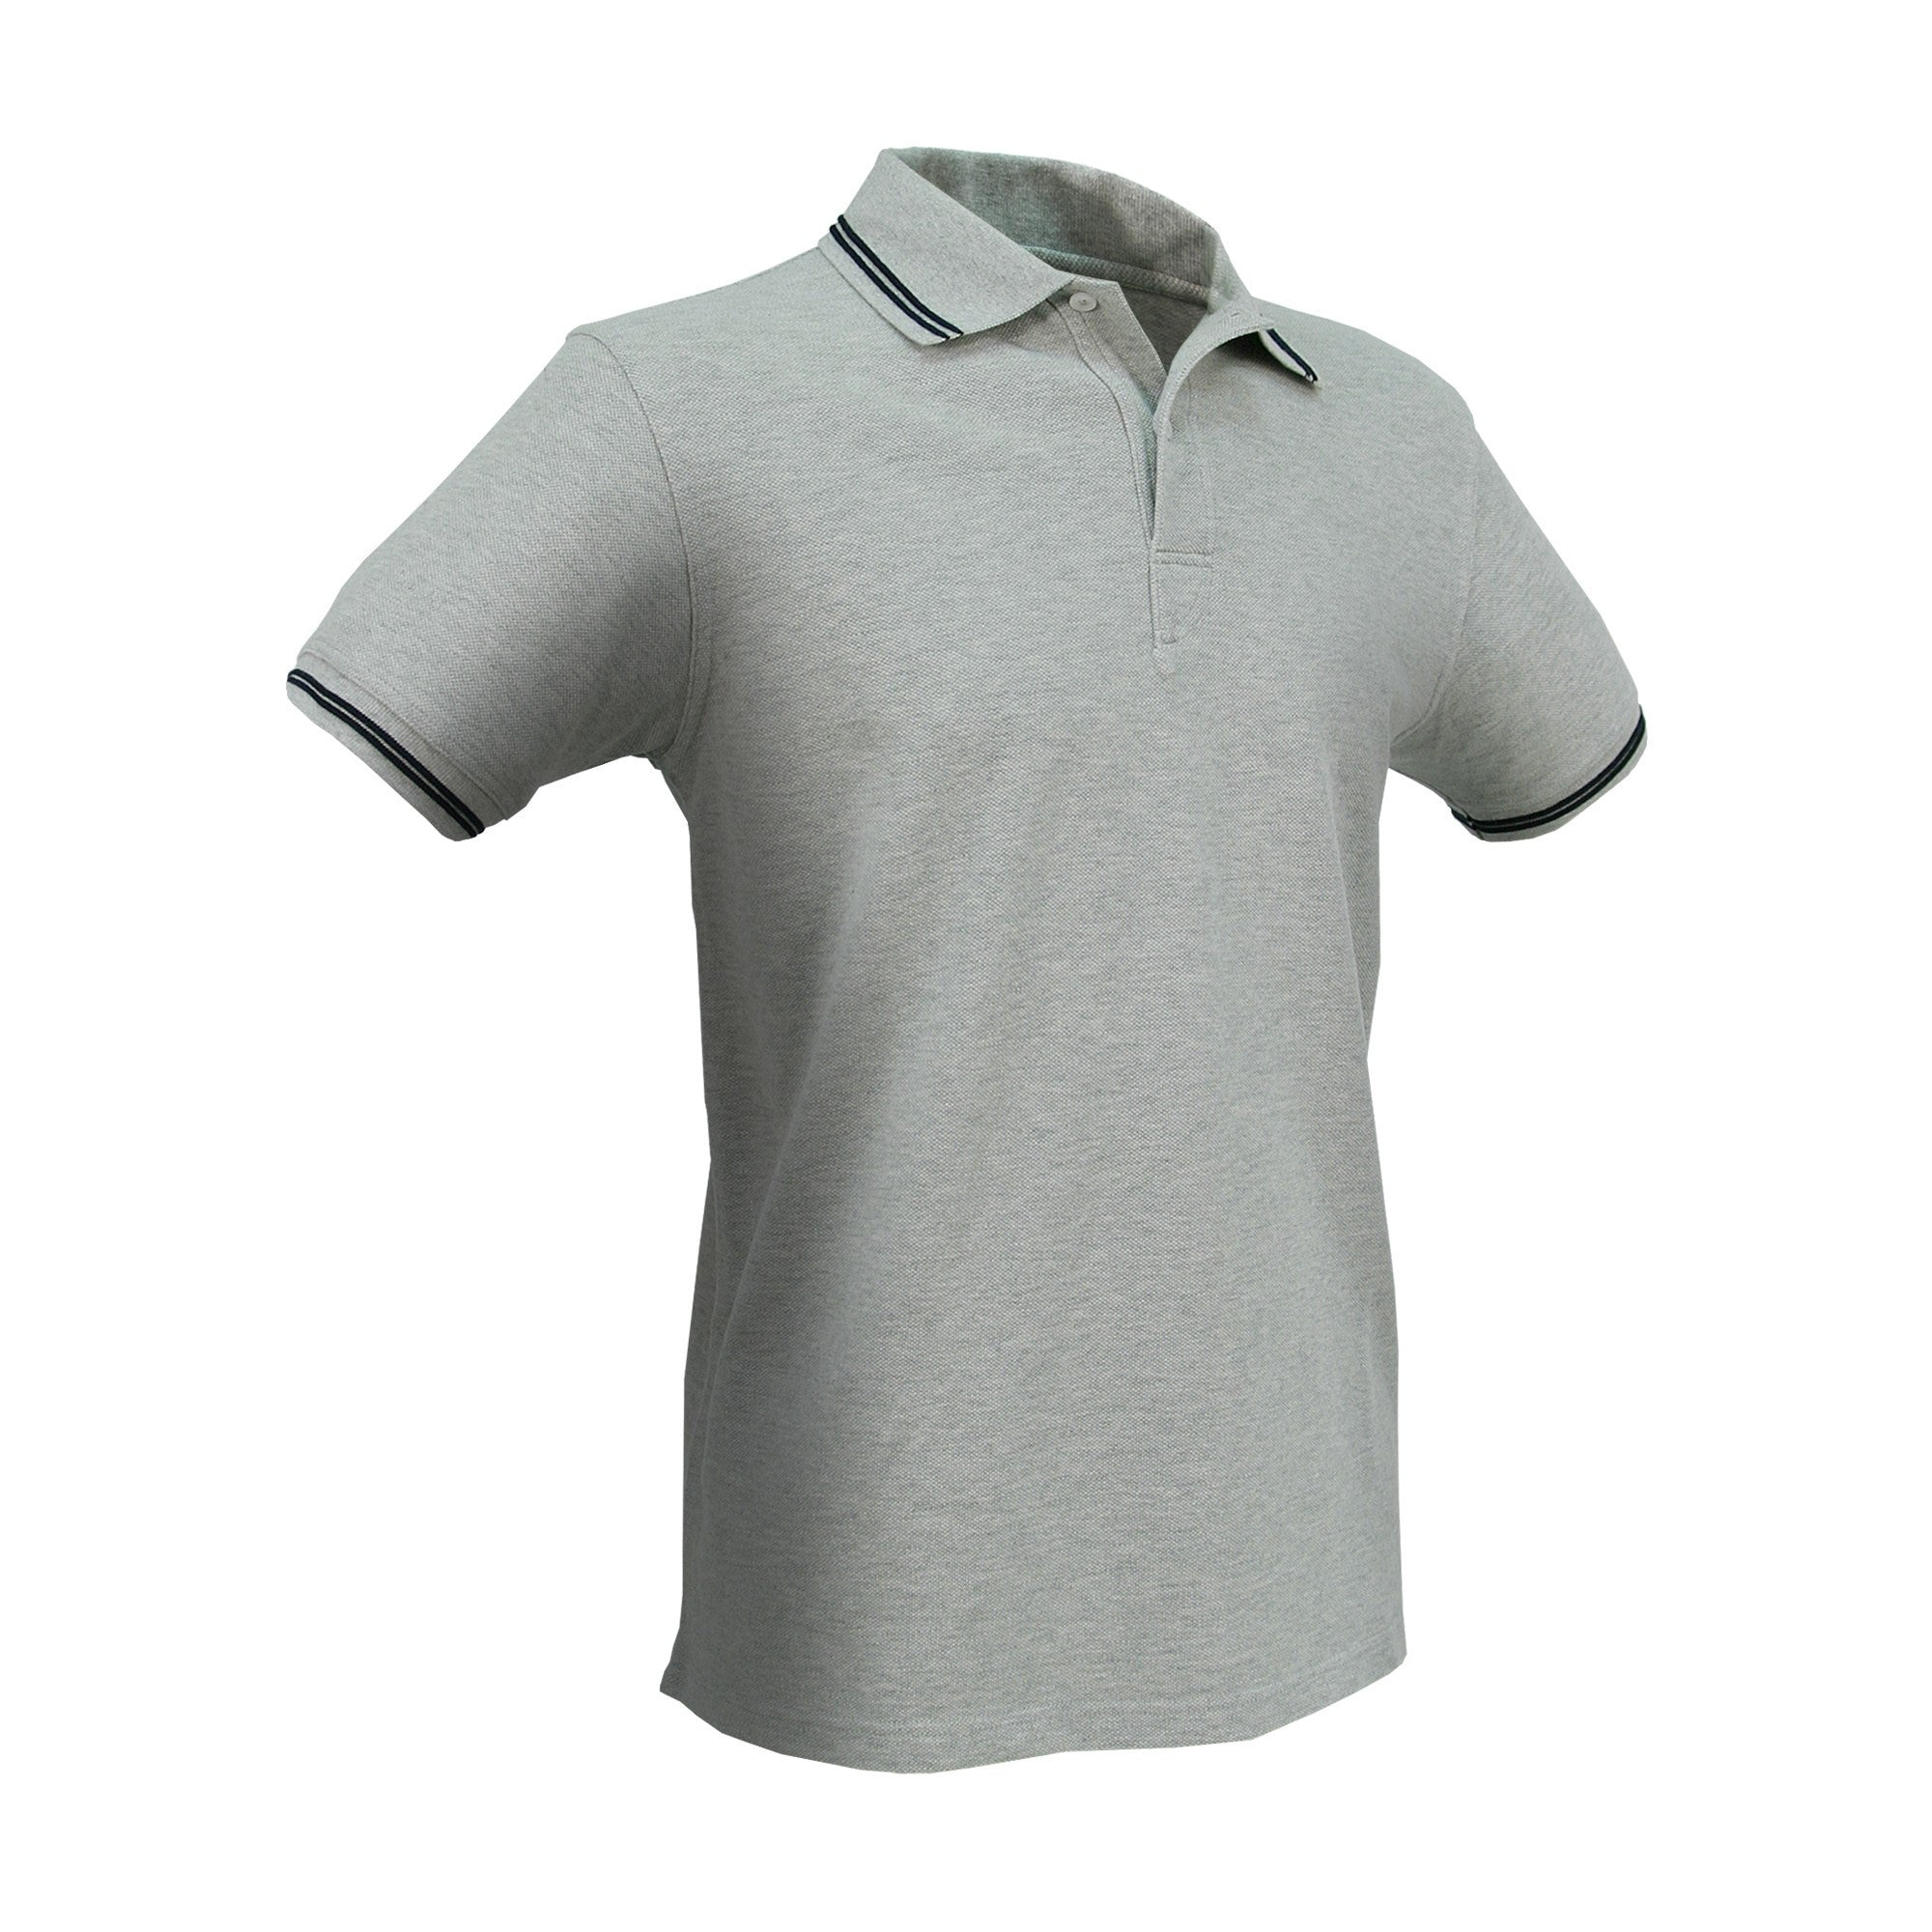 Regatta Polo - White